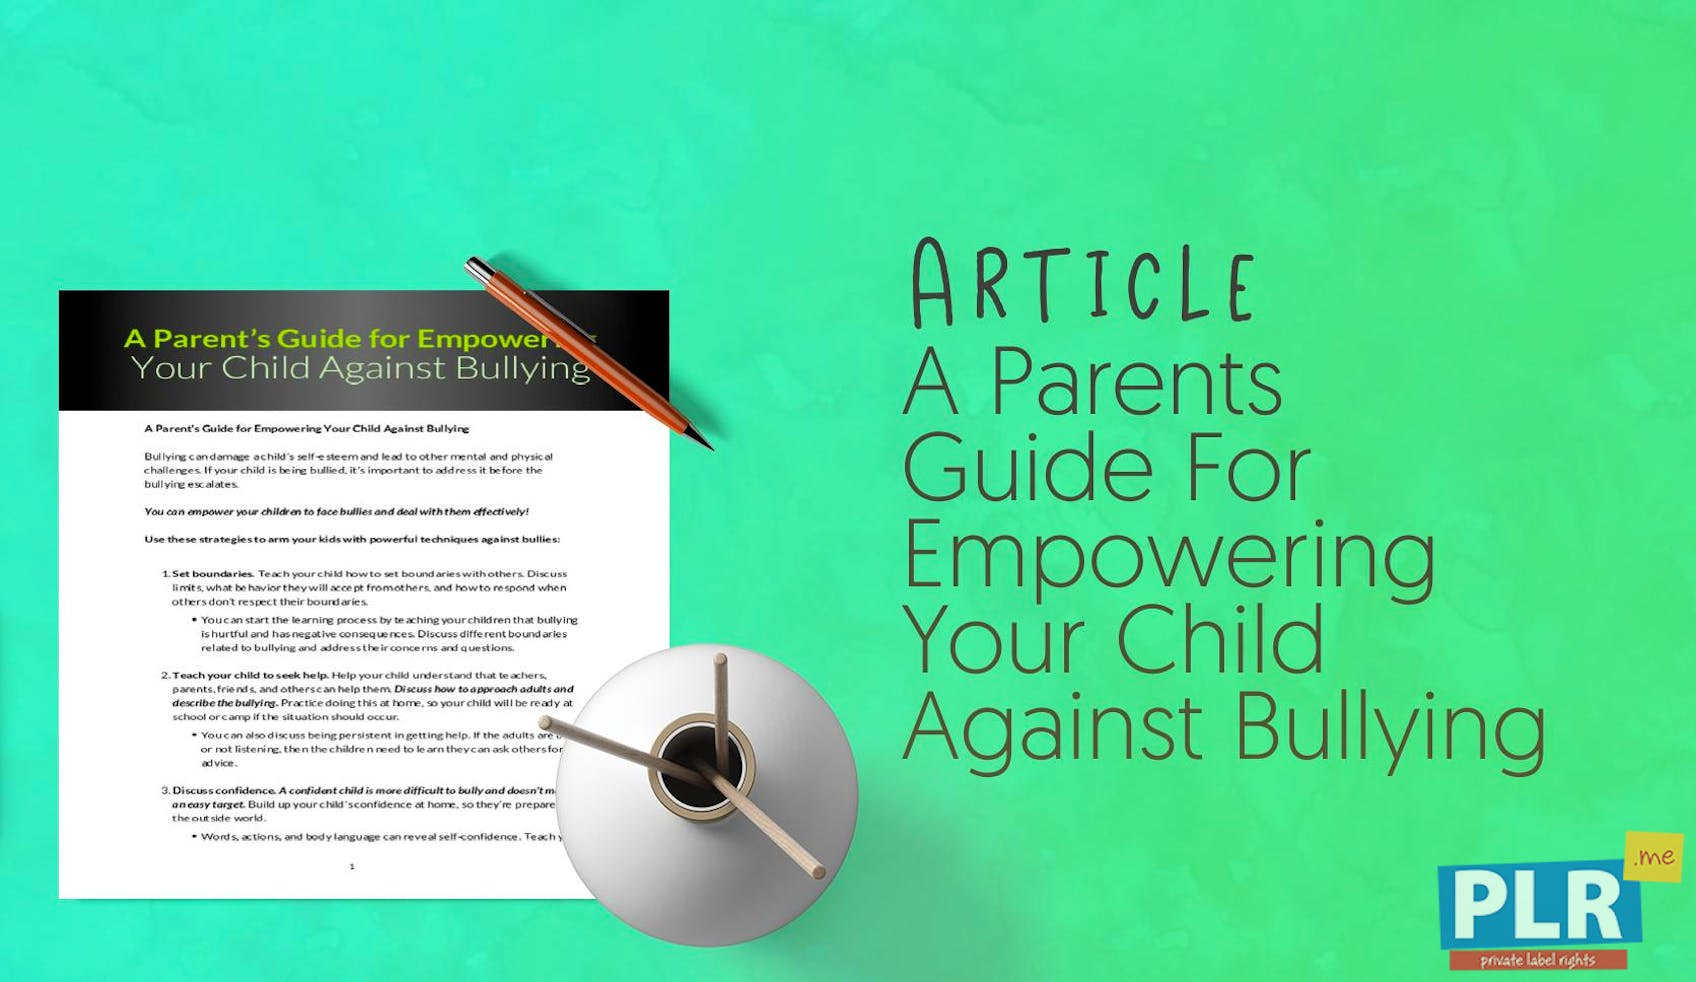 Your Childs Rights Response To >> Plr Articles Blog Posts A Parents Guide For Empowering Your